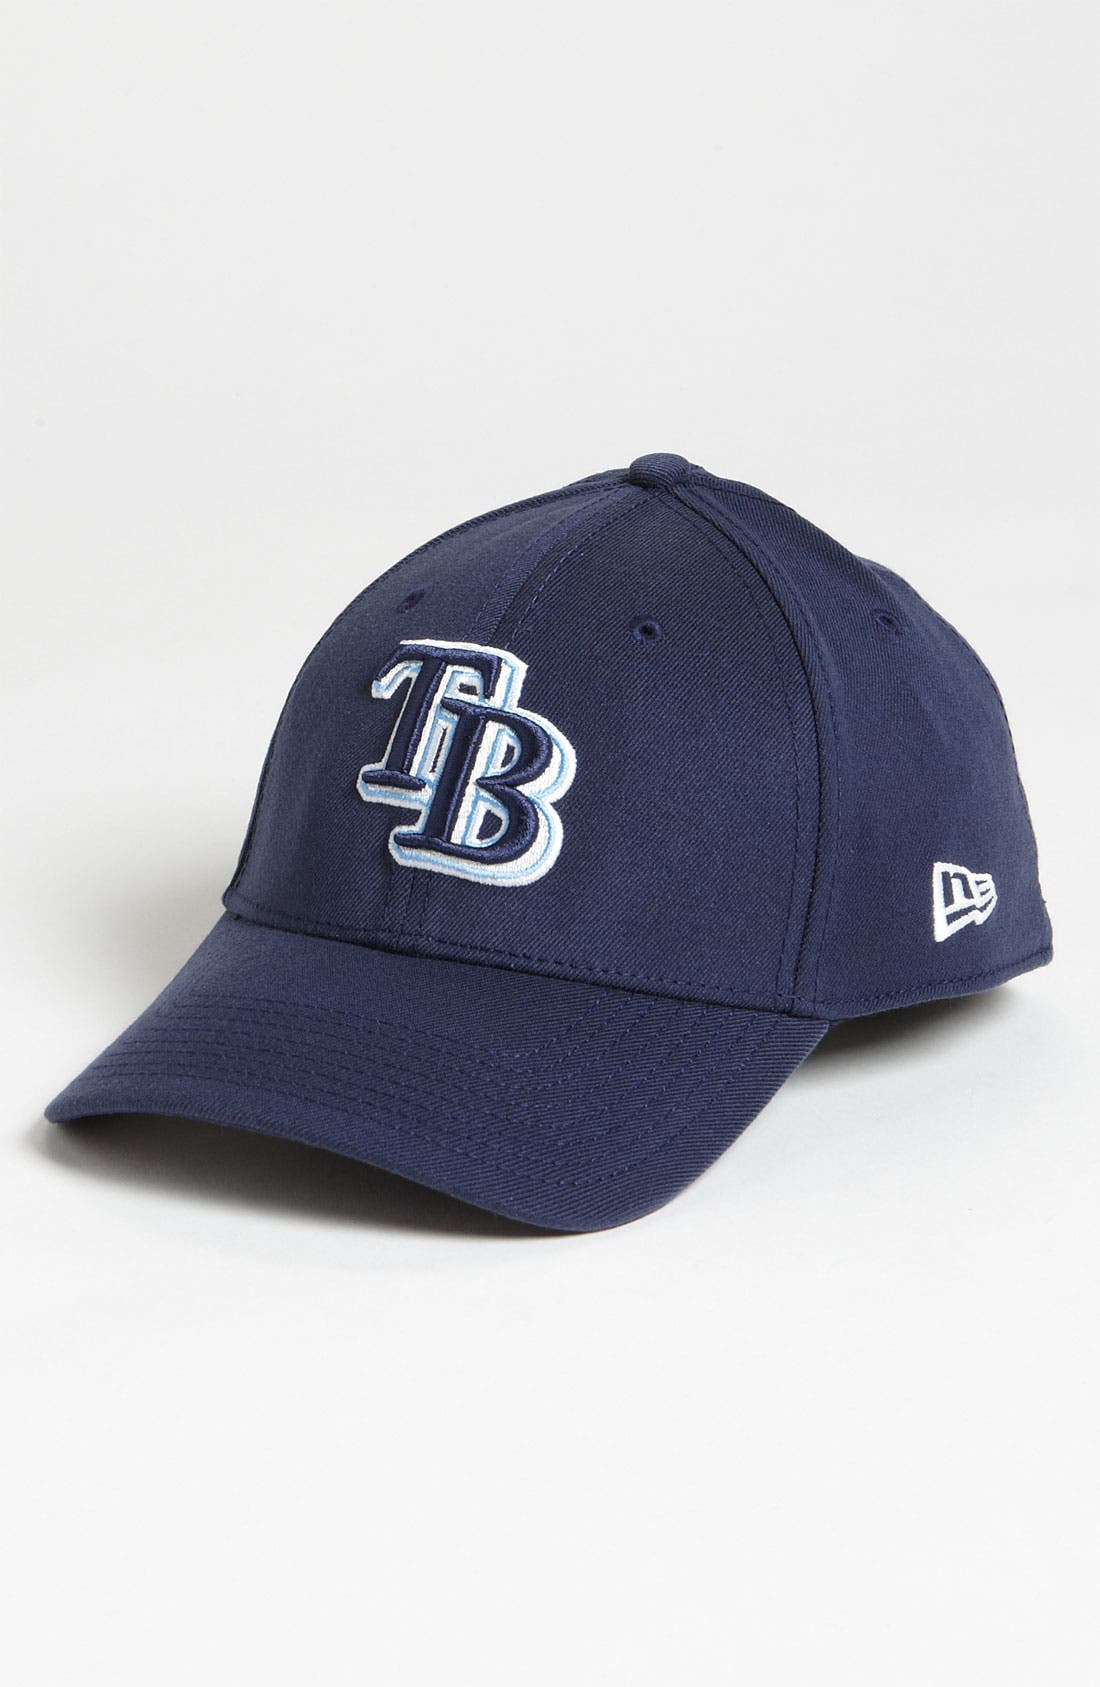 Alternate Image 1 Selected - New Era Cap 'Tampa Bay Rays' Baseball Cap